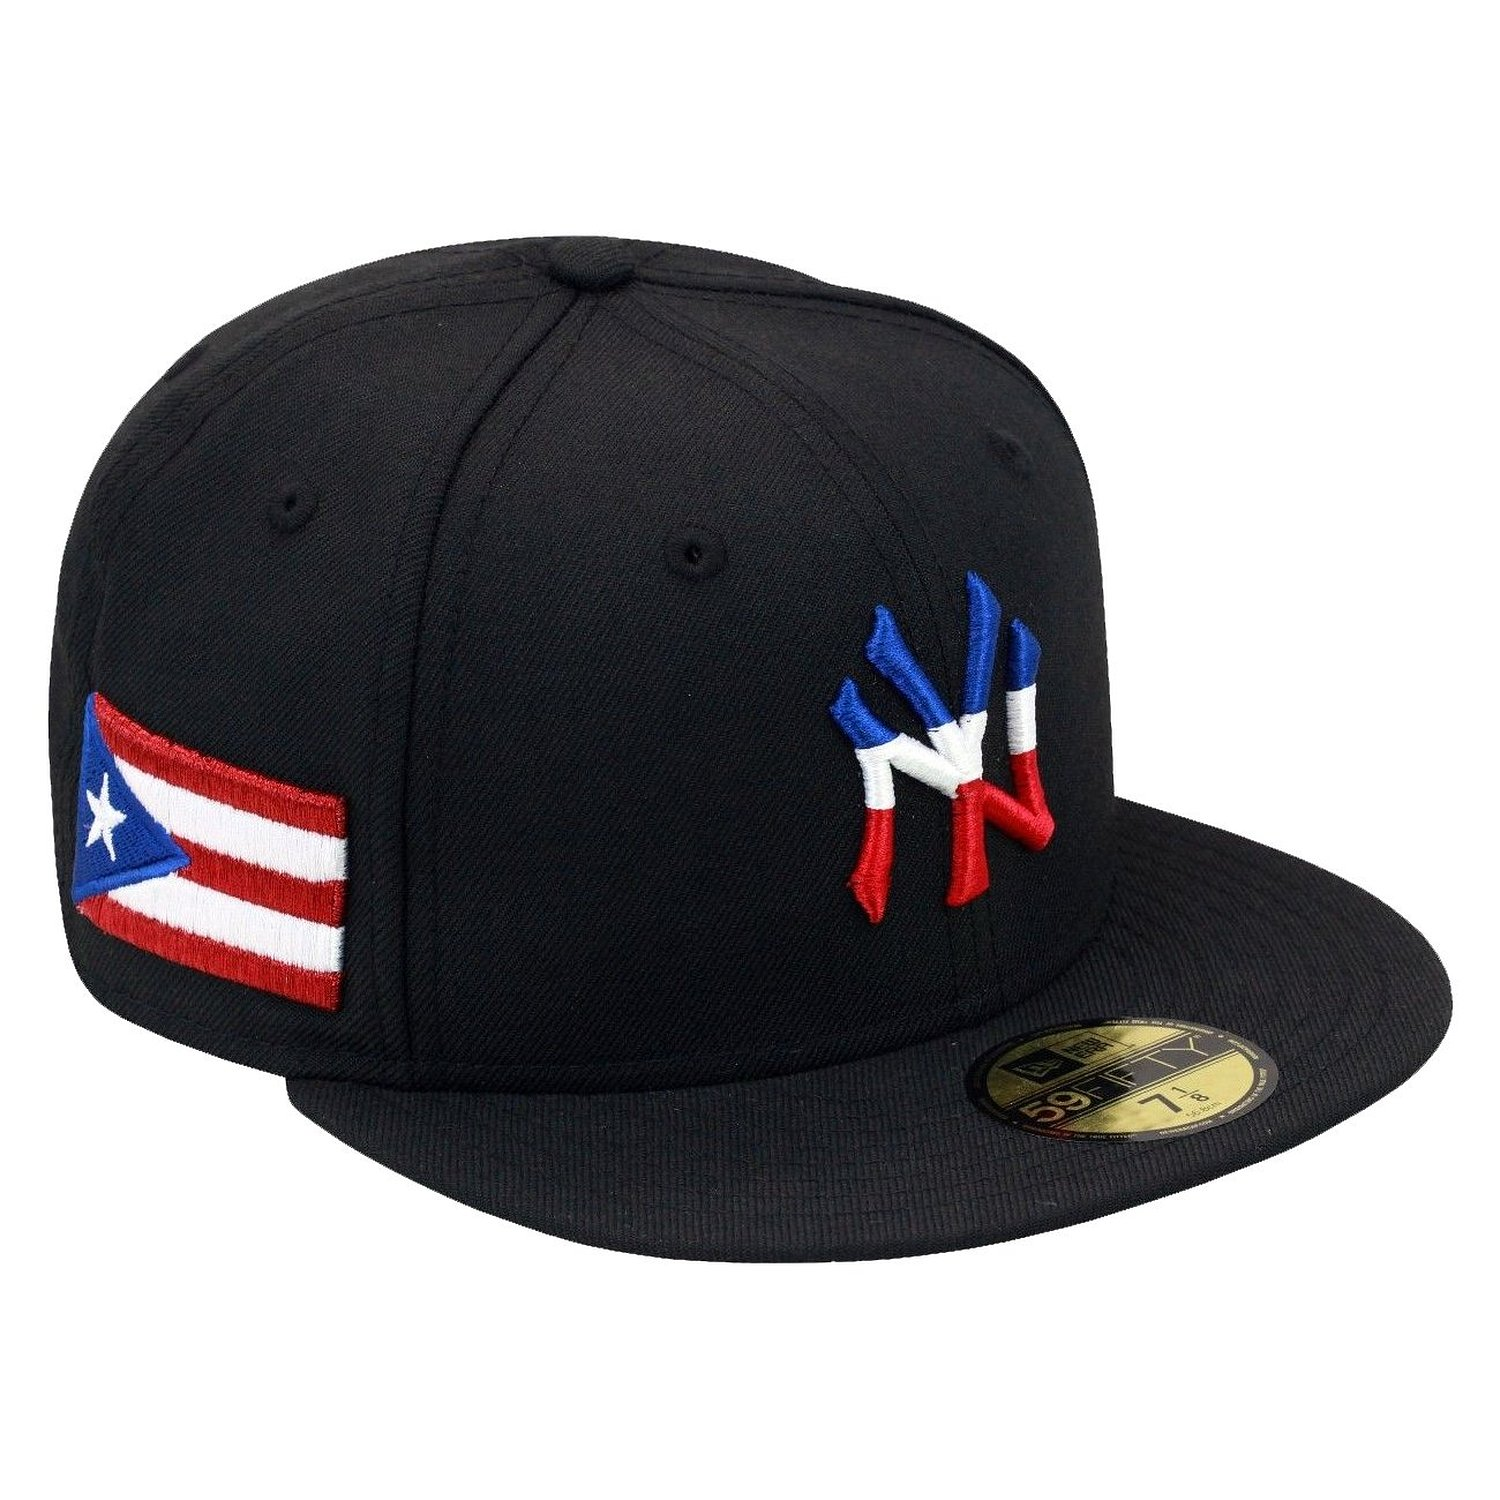 3042aee98d3 Get Quotations · New Era 59fifty New York Yankees Baseball Fitted Hat Cap  Puerto Rico PR Flag MLB